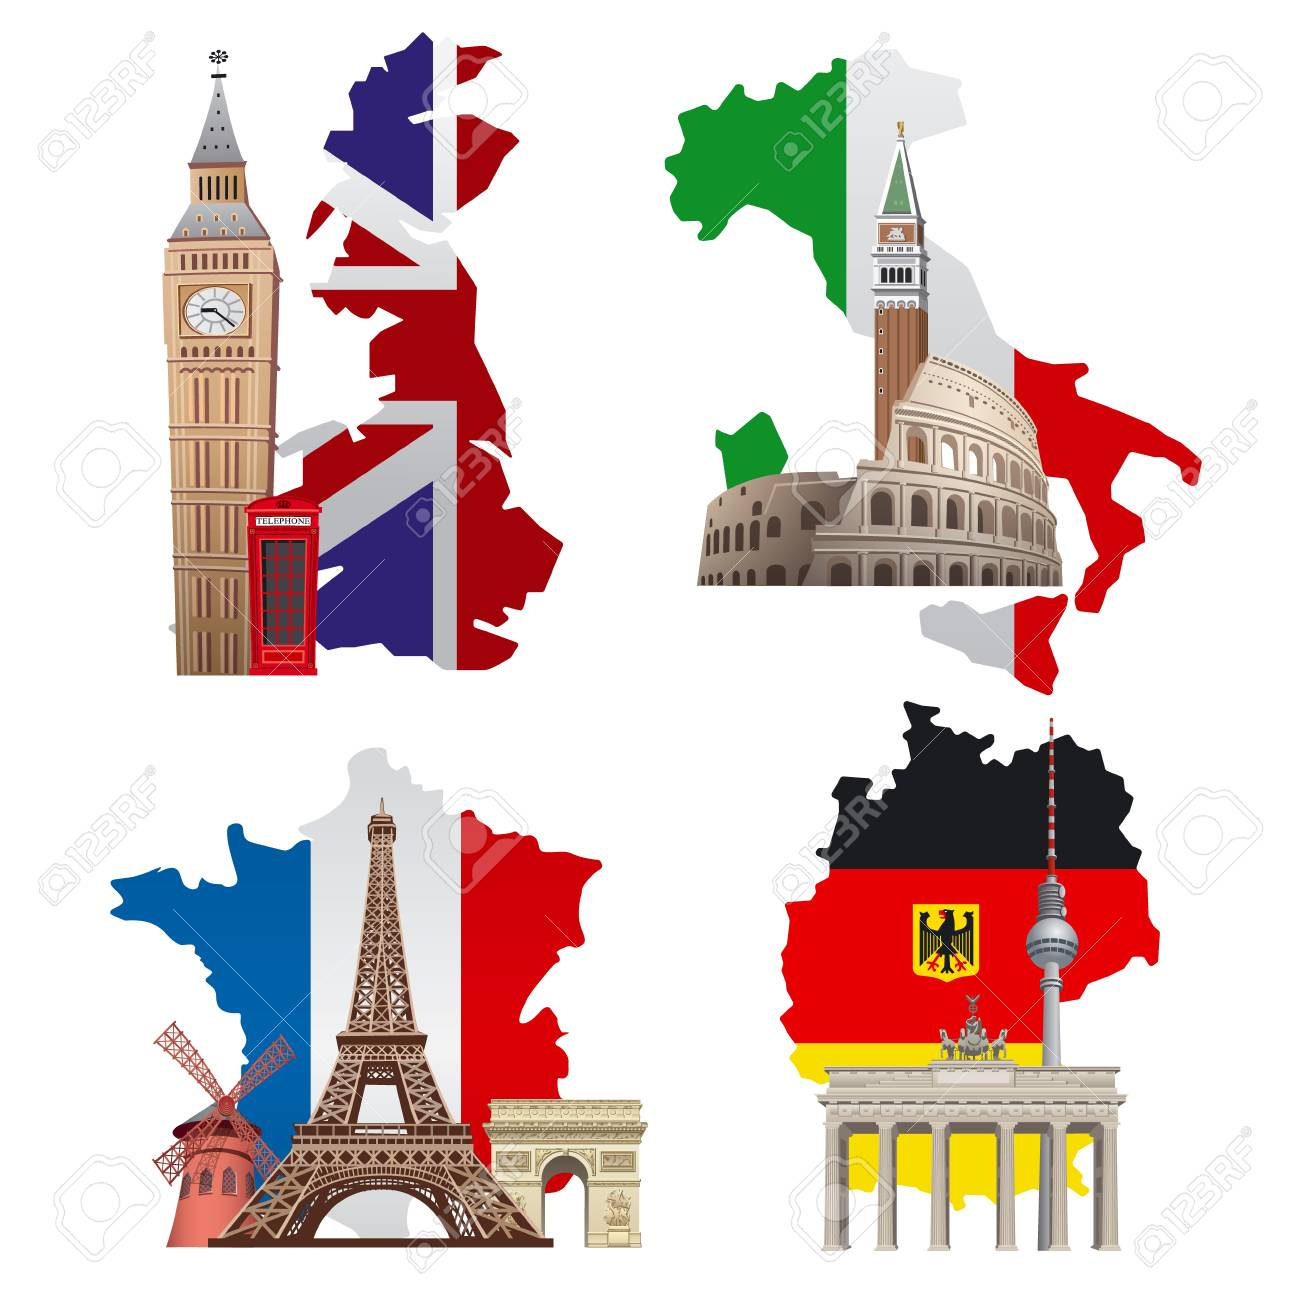 Map Of England France And Italy.Concept Illustrations Of Europe Landmarks And Maps France Italy